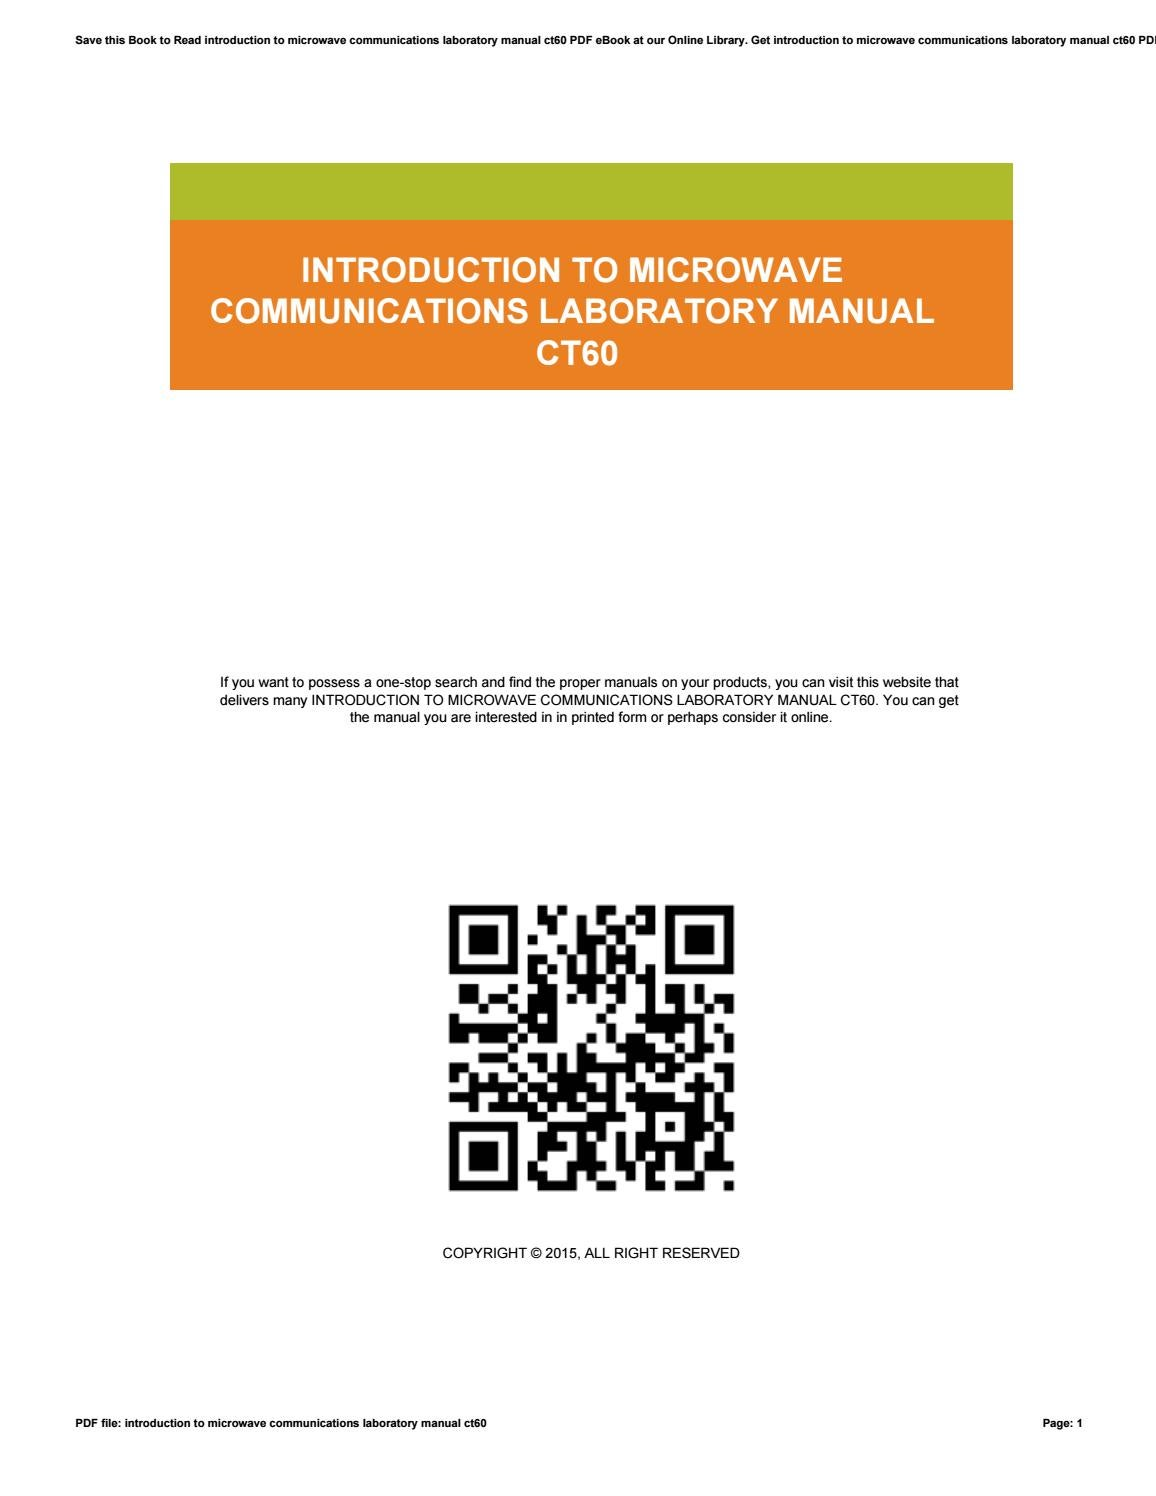 introduction to microwave communications laboratory manual ct60